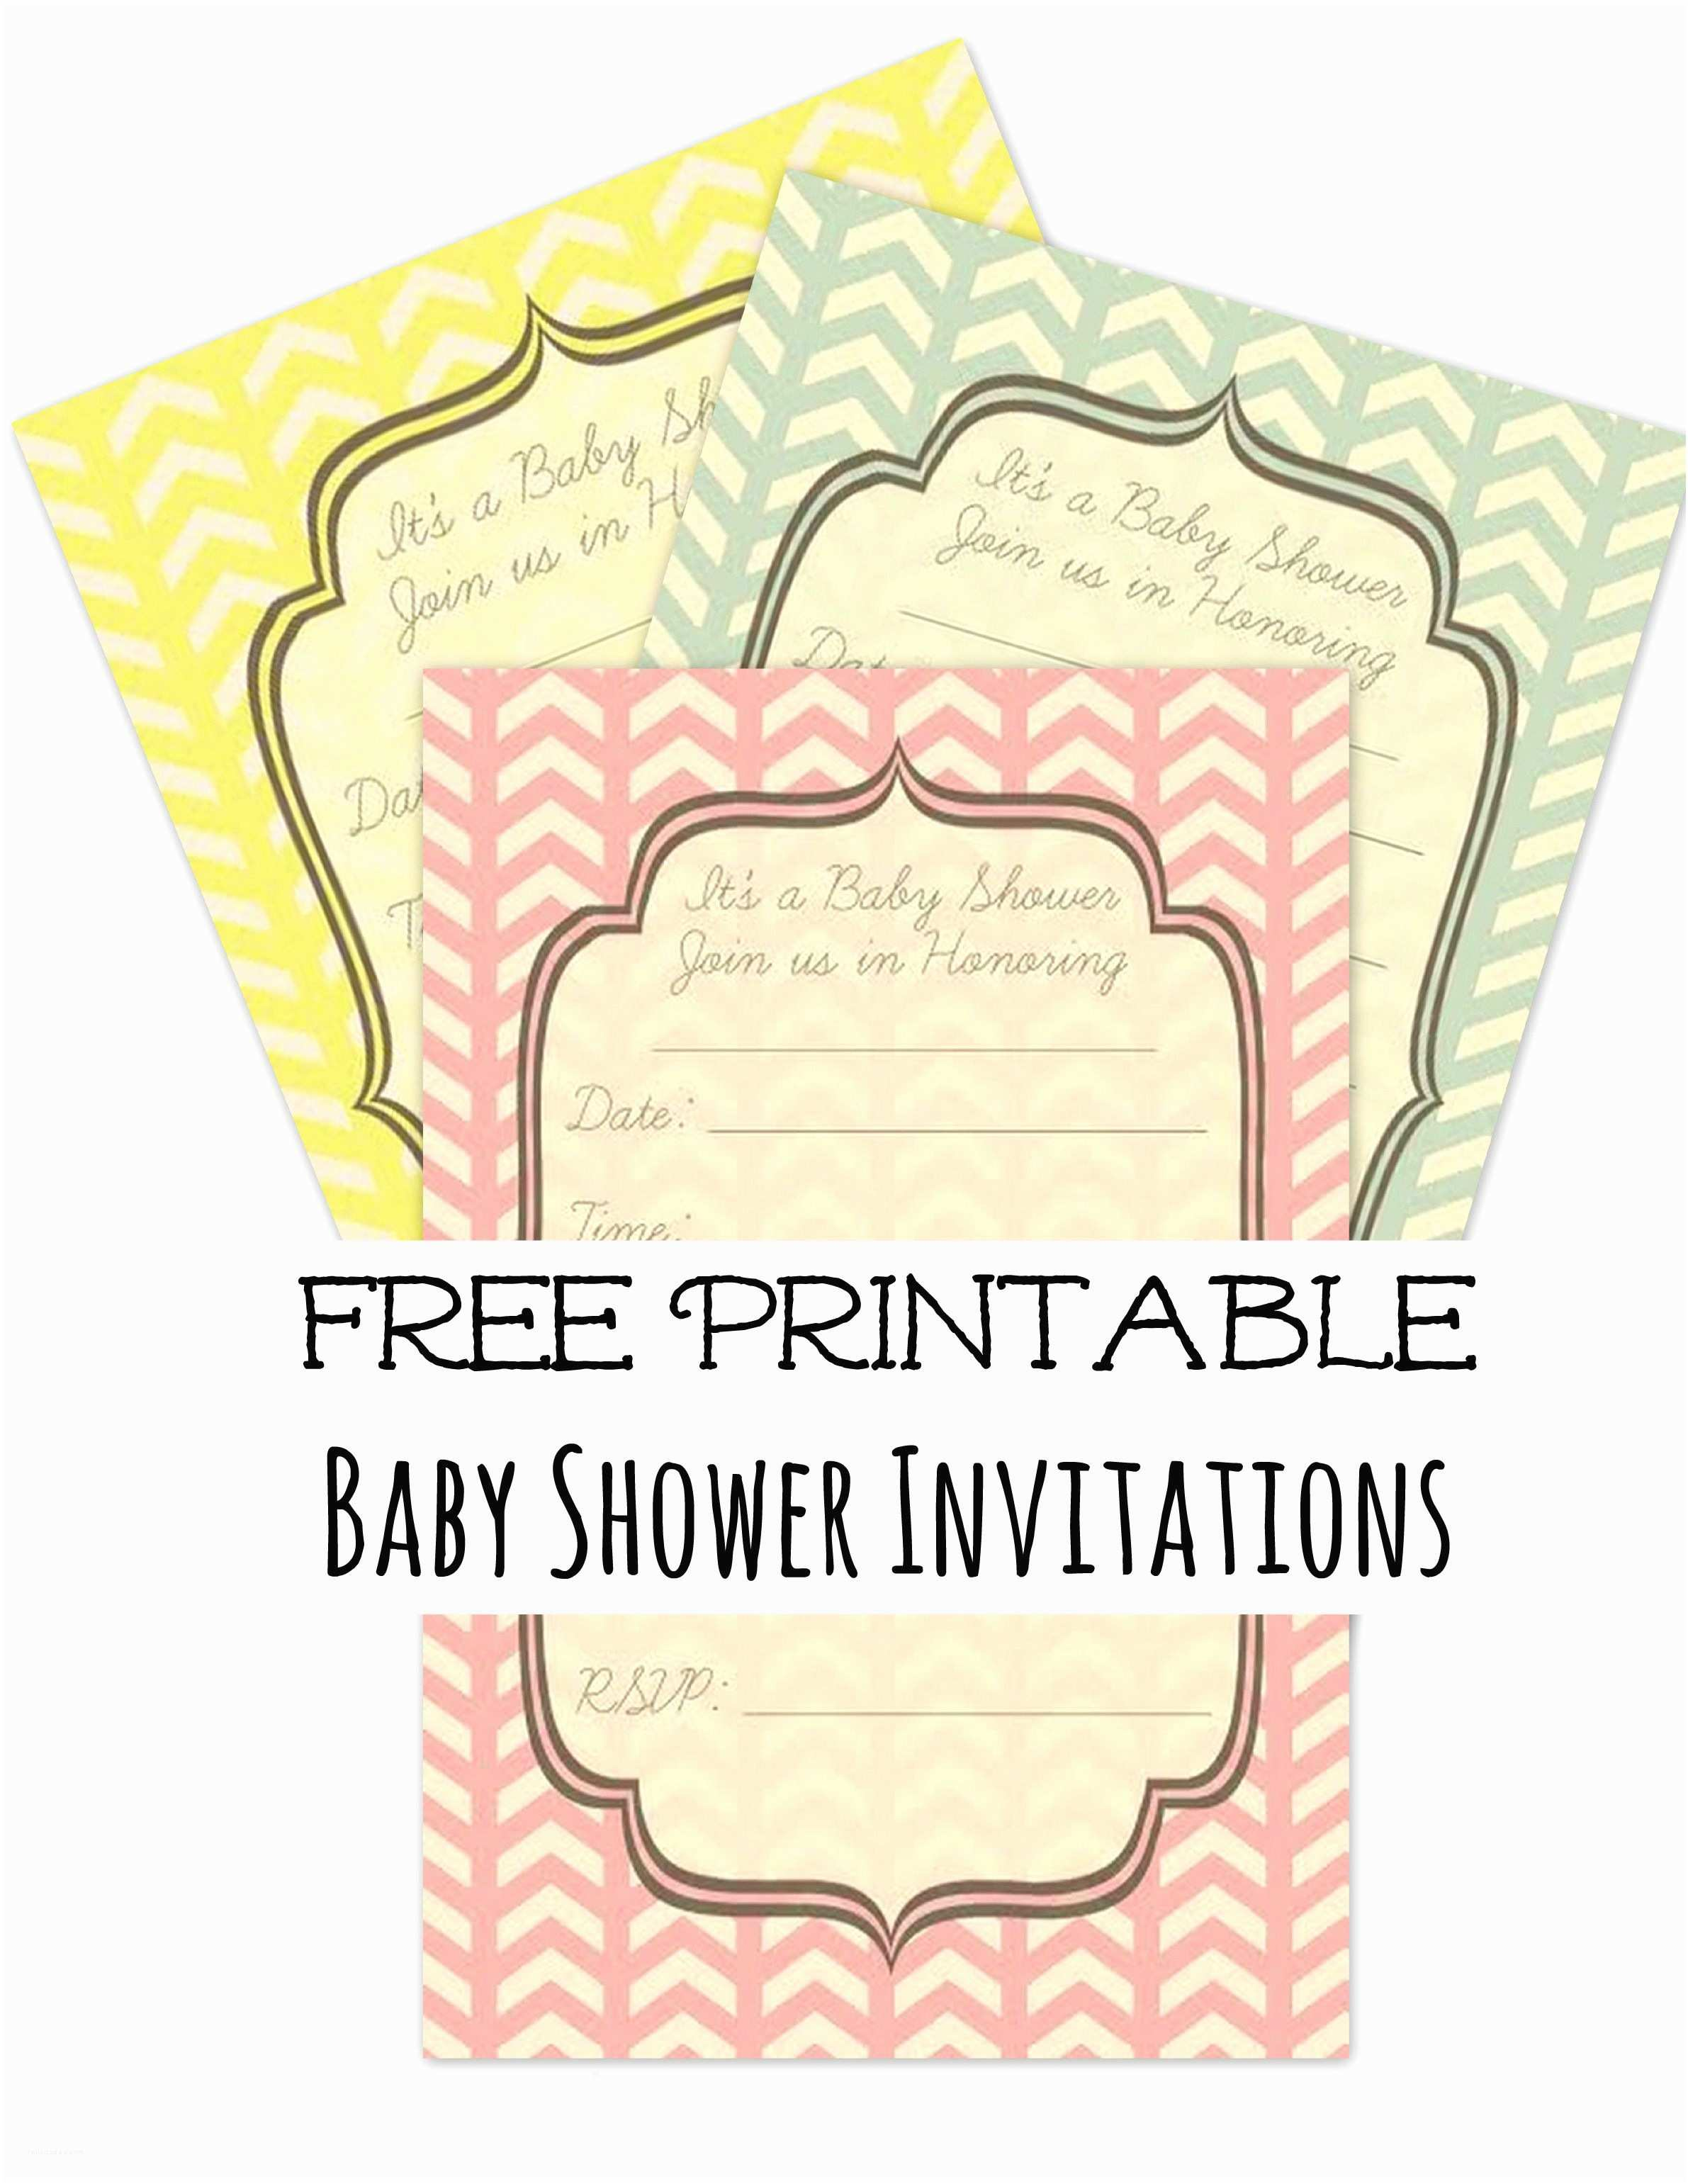 Baby Shower Invitation Examples Baby Shower Invitation Free Baby Shower Invitation